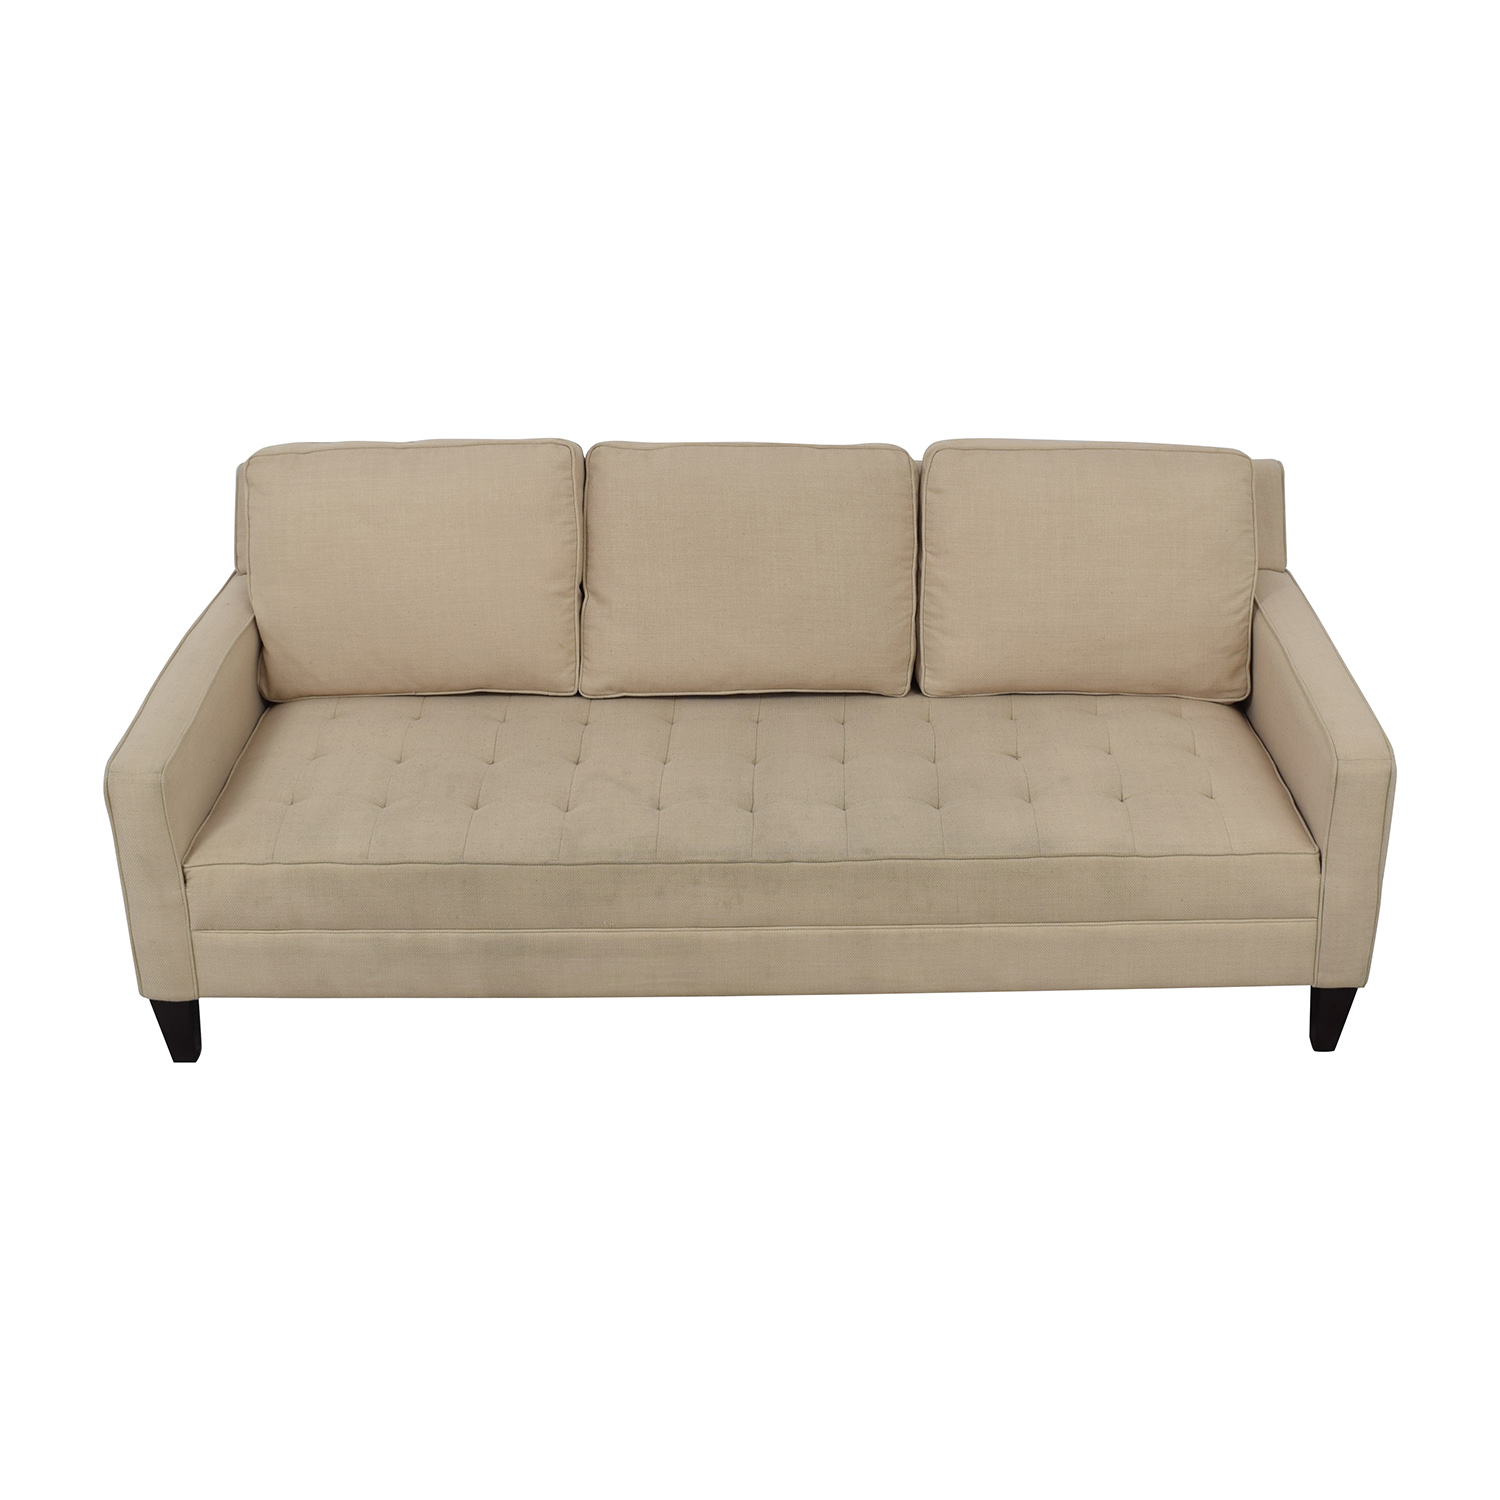 Single cushion sofa bed sofa menzilperde net for Sofa bed single